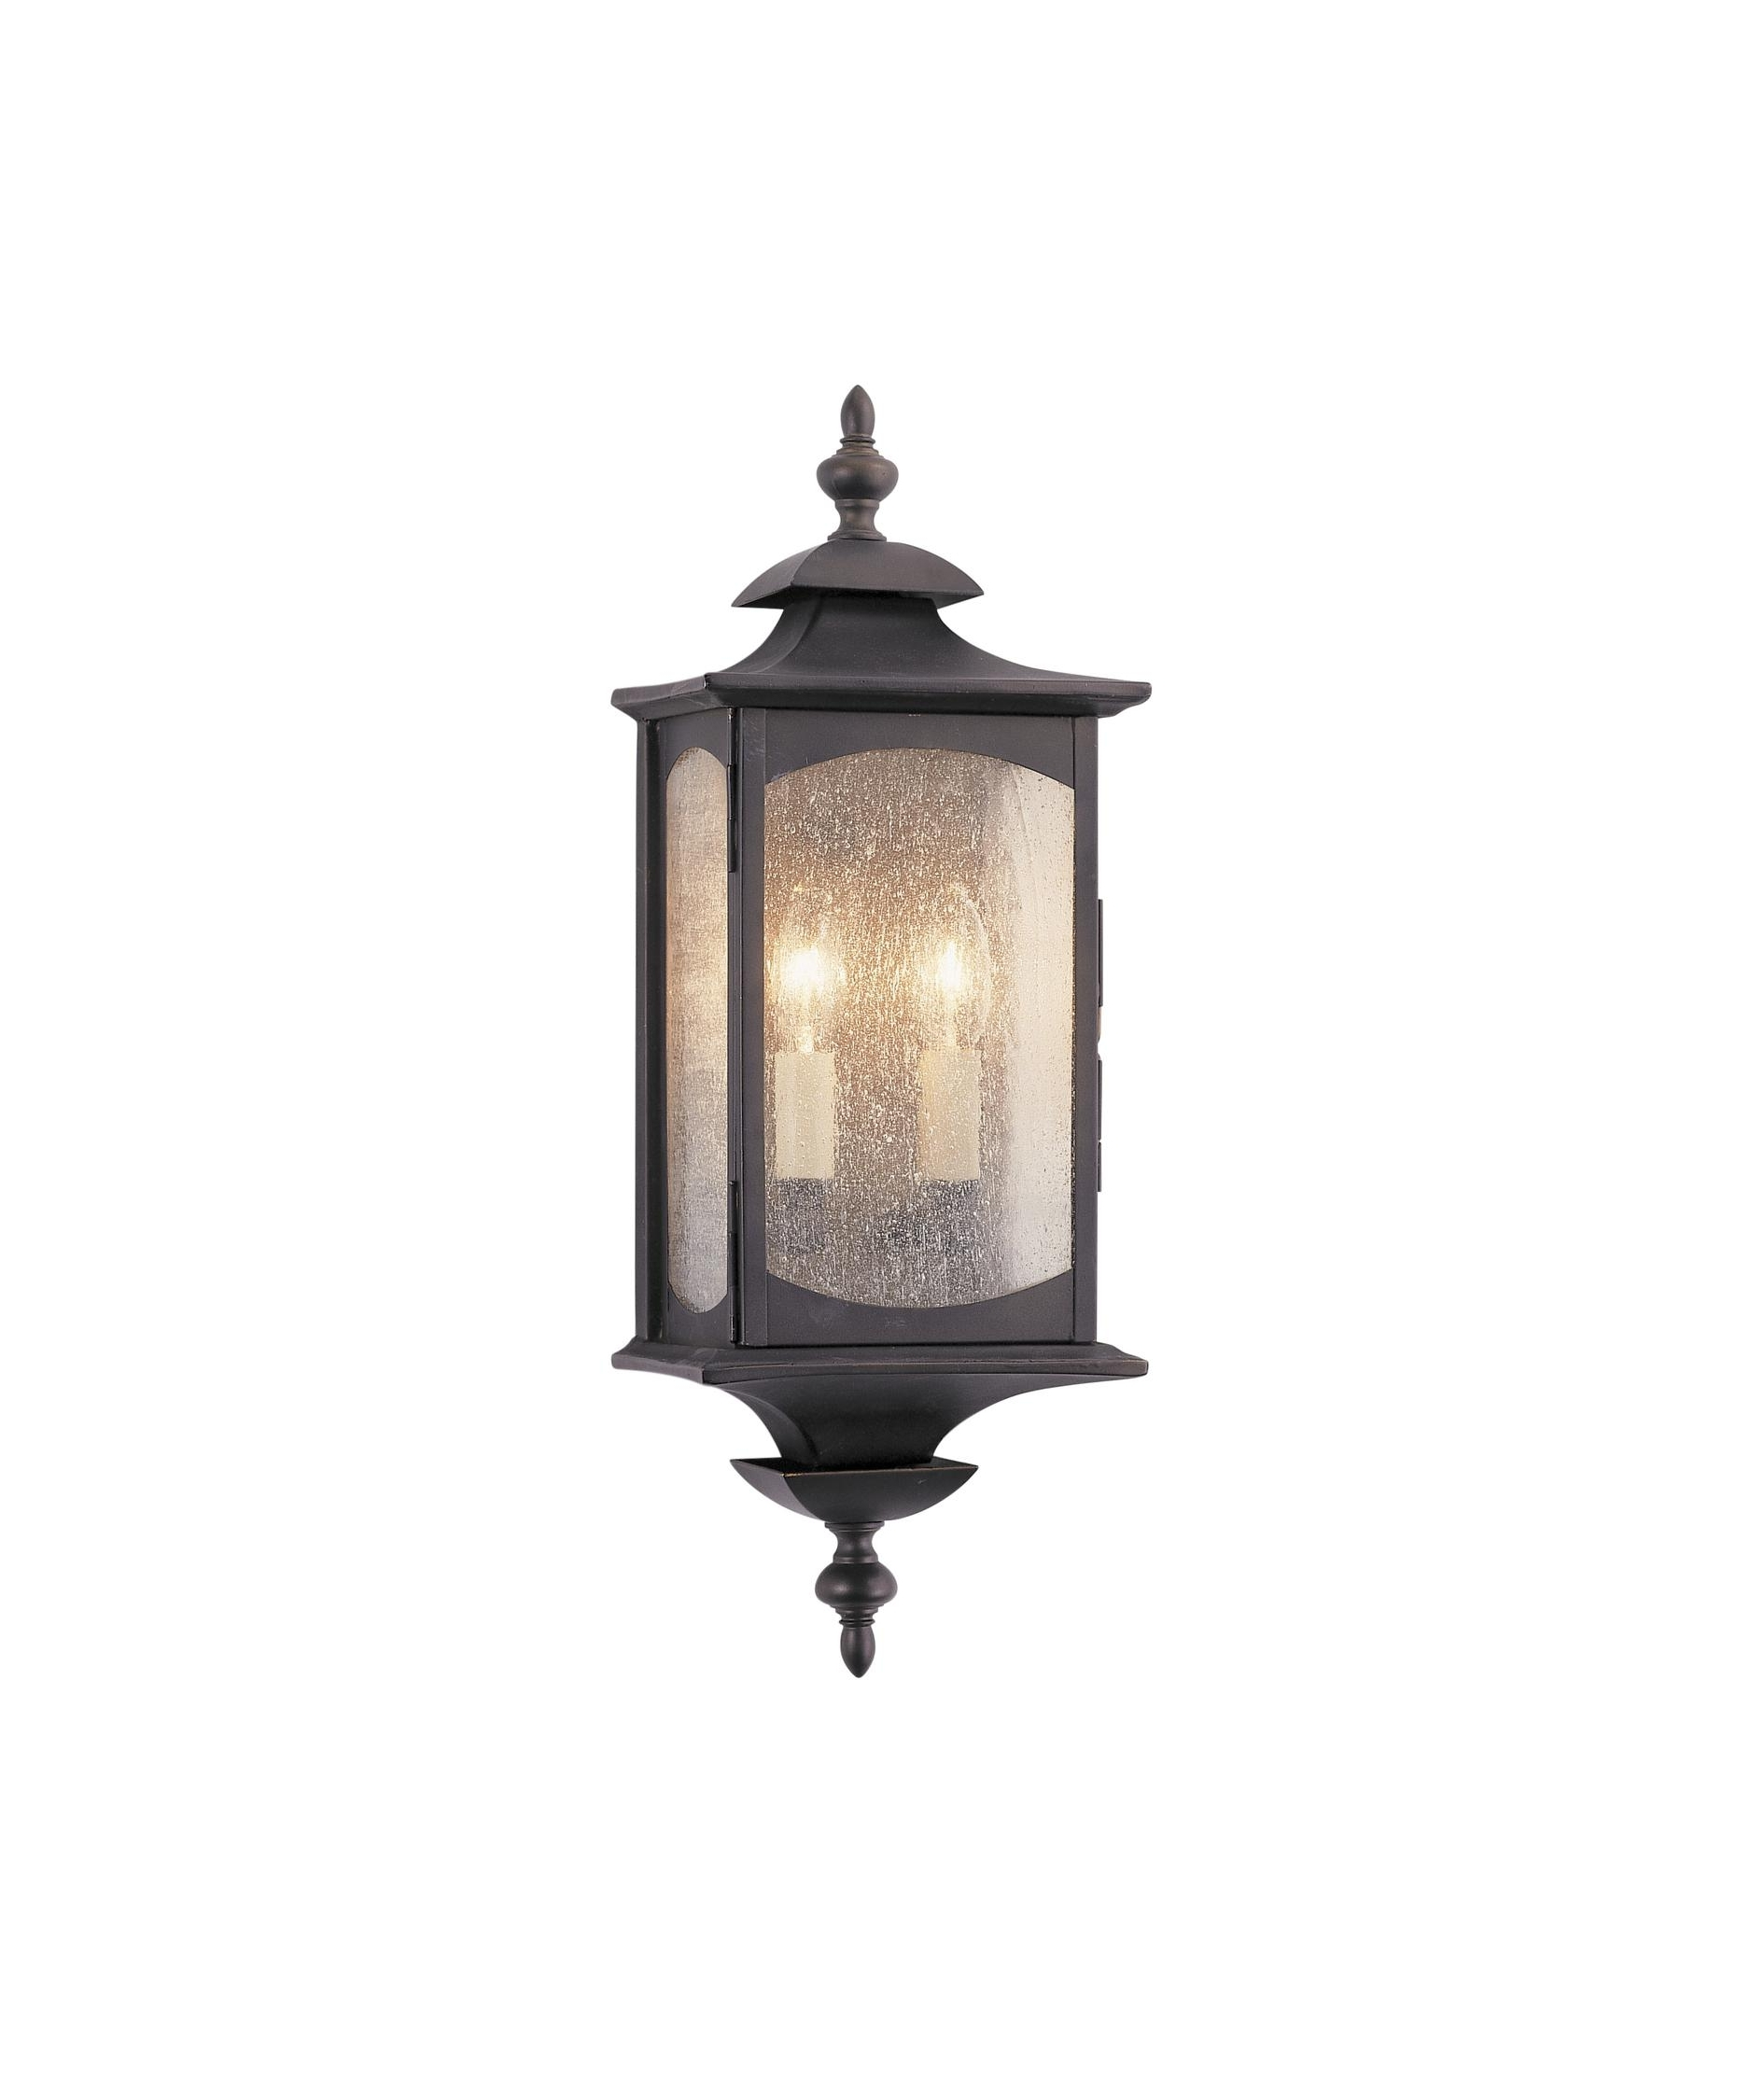 Preferred Outdoor Wall Lighting With Seeded Glass Within Murray Feiss Ol2601 Market Square 7 Inch Wide 2 Light Outdoor Wall (View 18 of 20)